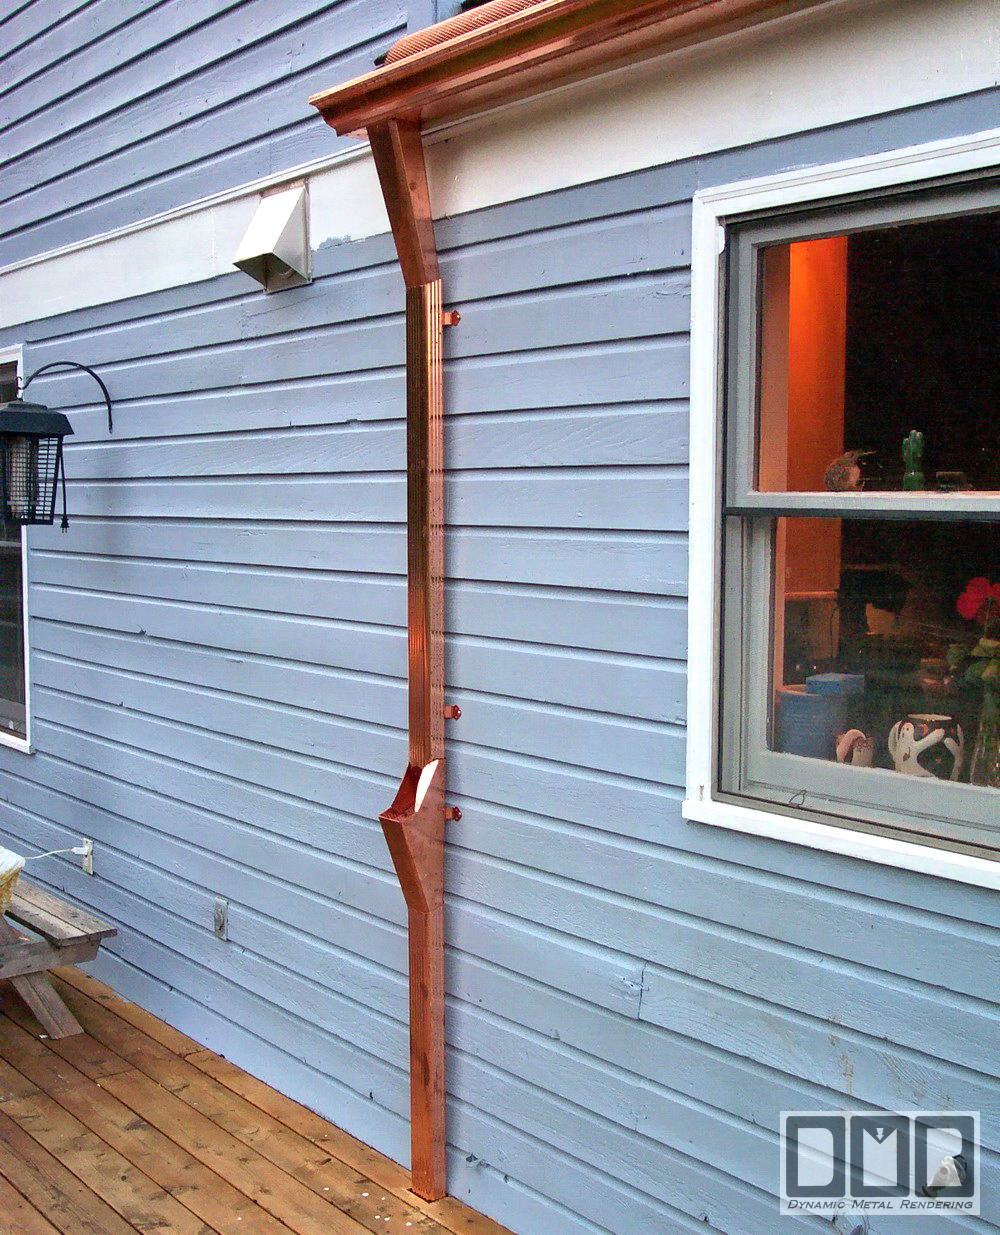 The Hill S Copper Gutter Work Photopage